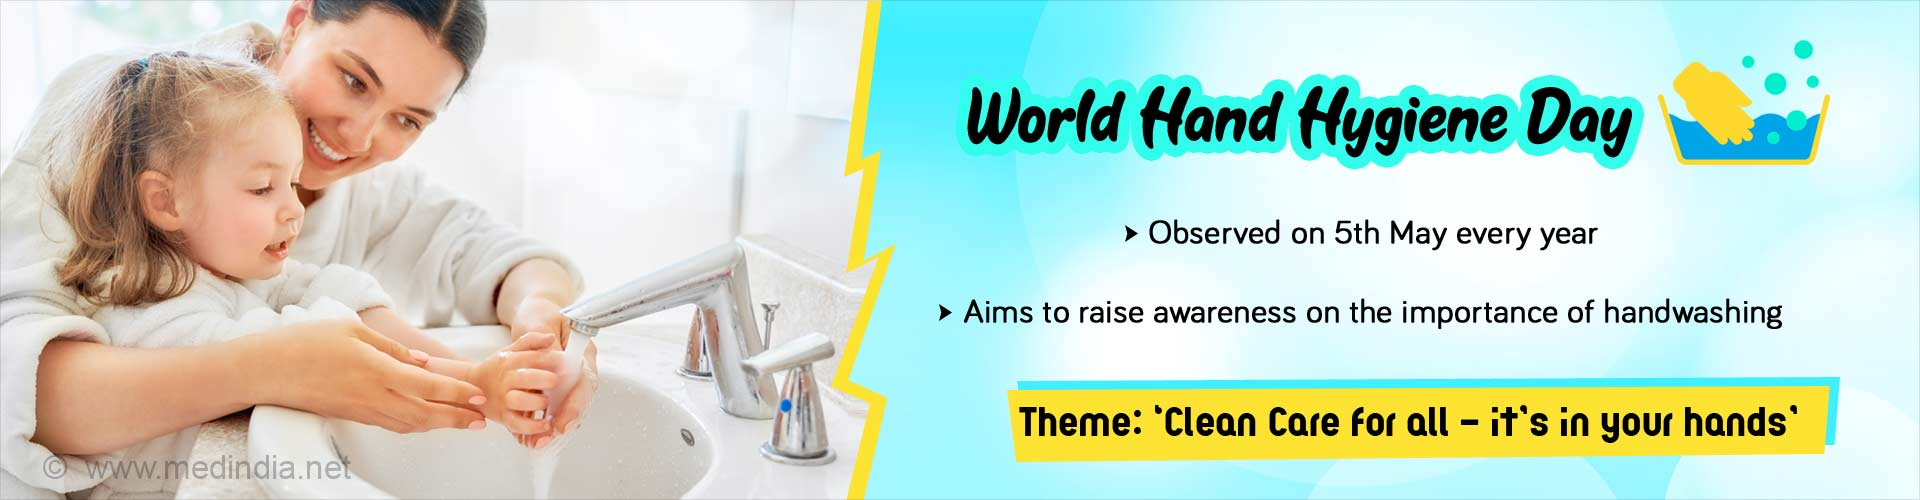 World Hand Hygiene Day: Clean Care for All - It''s in Your Hands